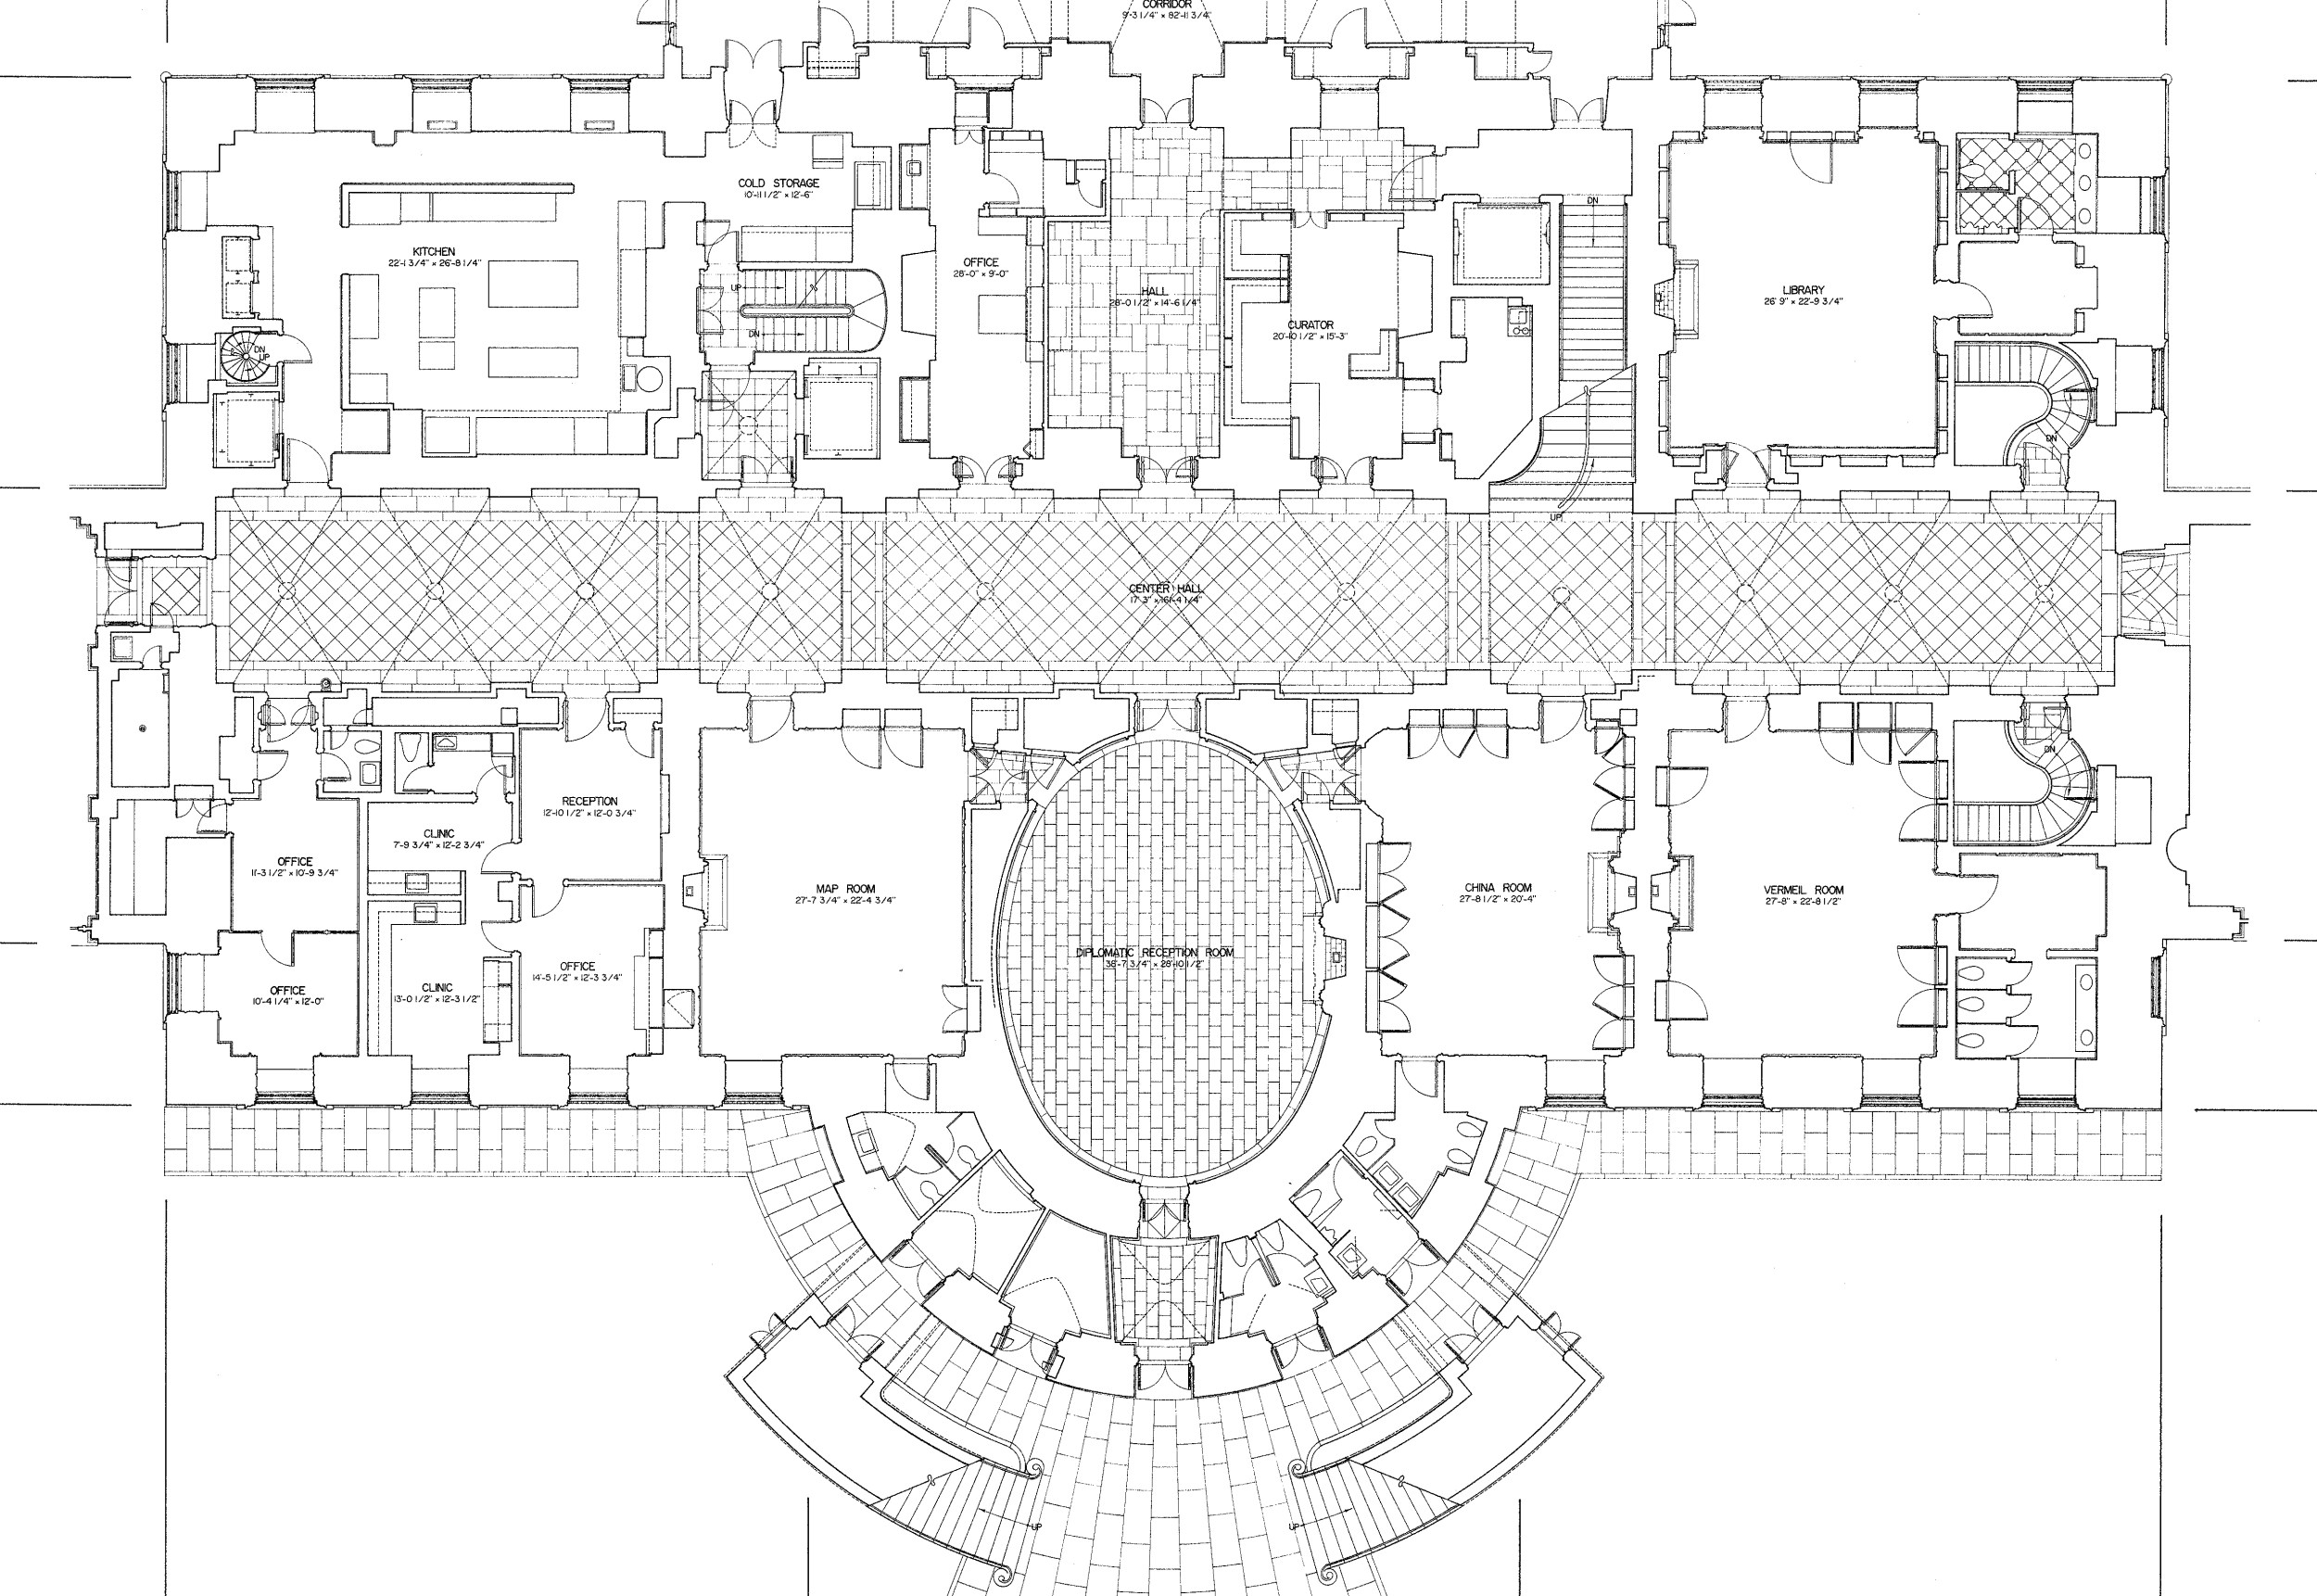 The white house floor plans washington dc the white house floor plans washington dc ccuart Gallery